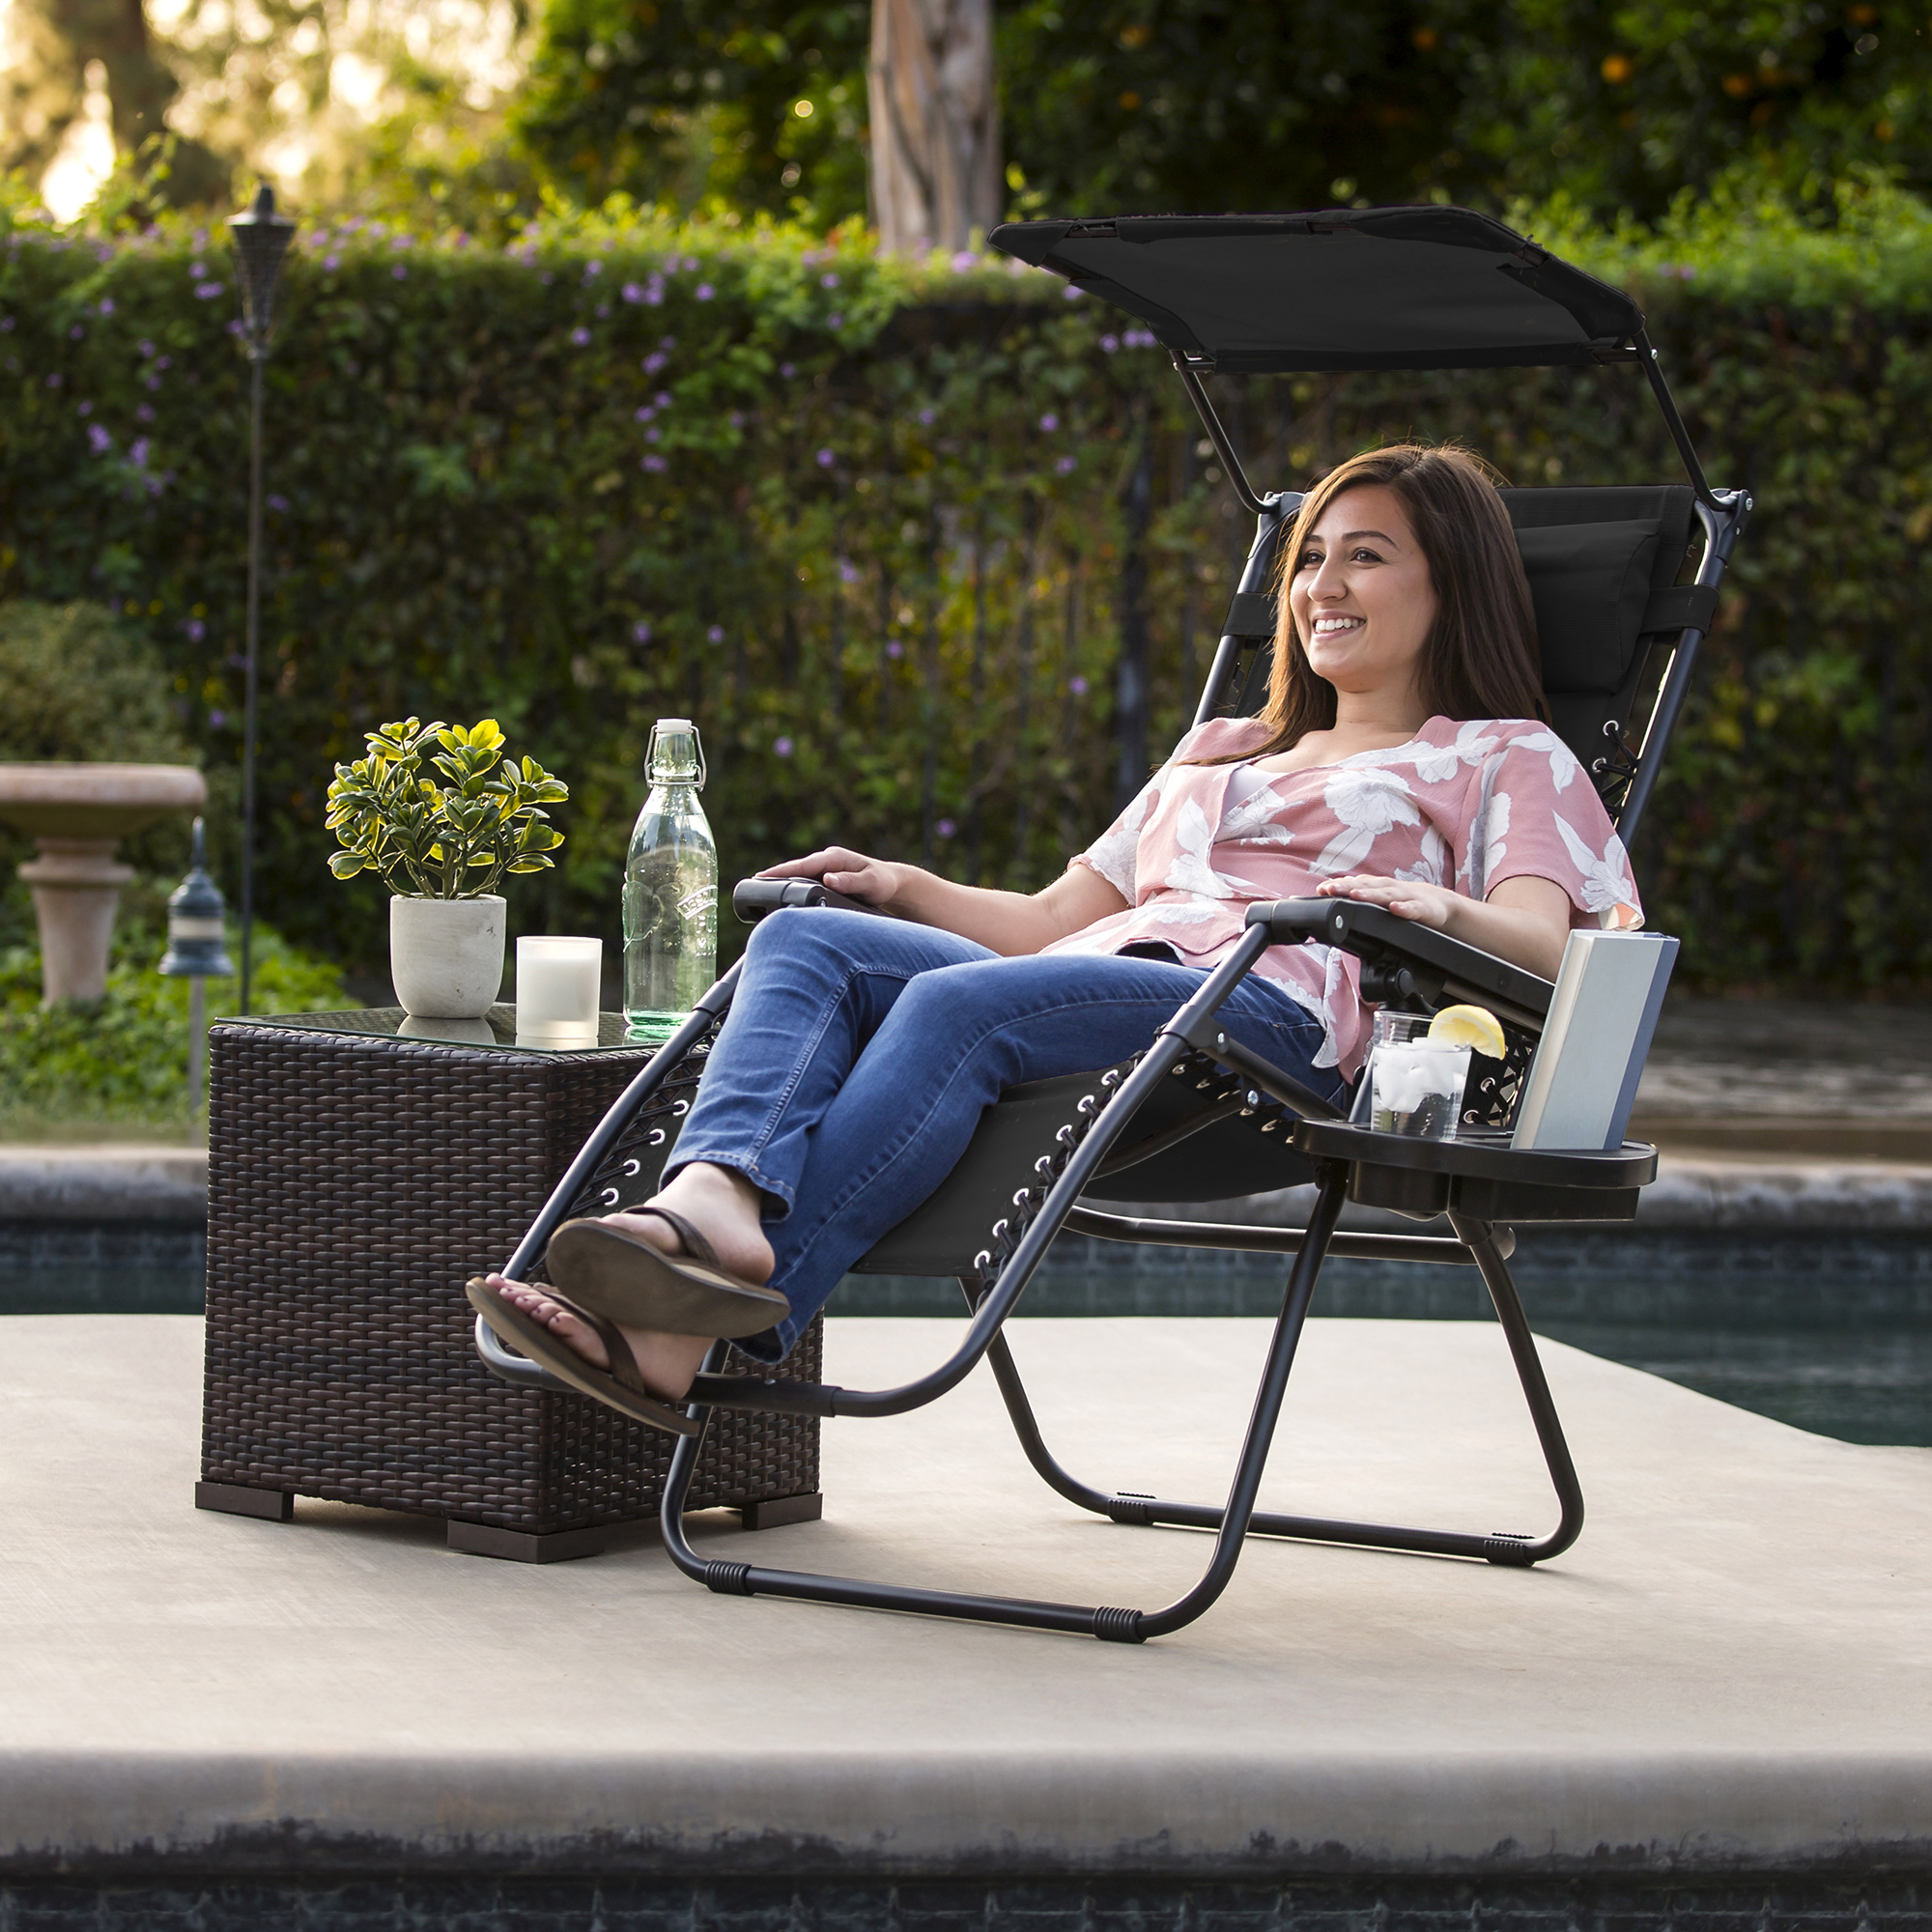 BCP-Folding-Zero-Gravity-Recliner-Lounge-Chair-w-Canopy-Cup-Holder thumbnail 16